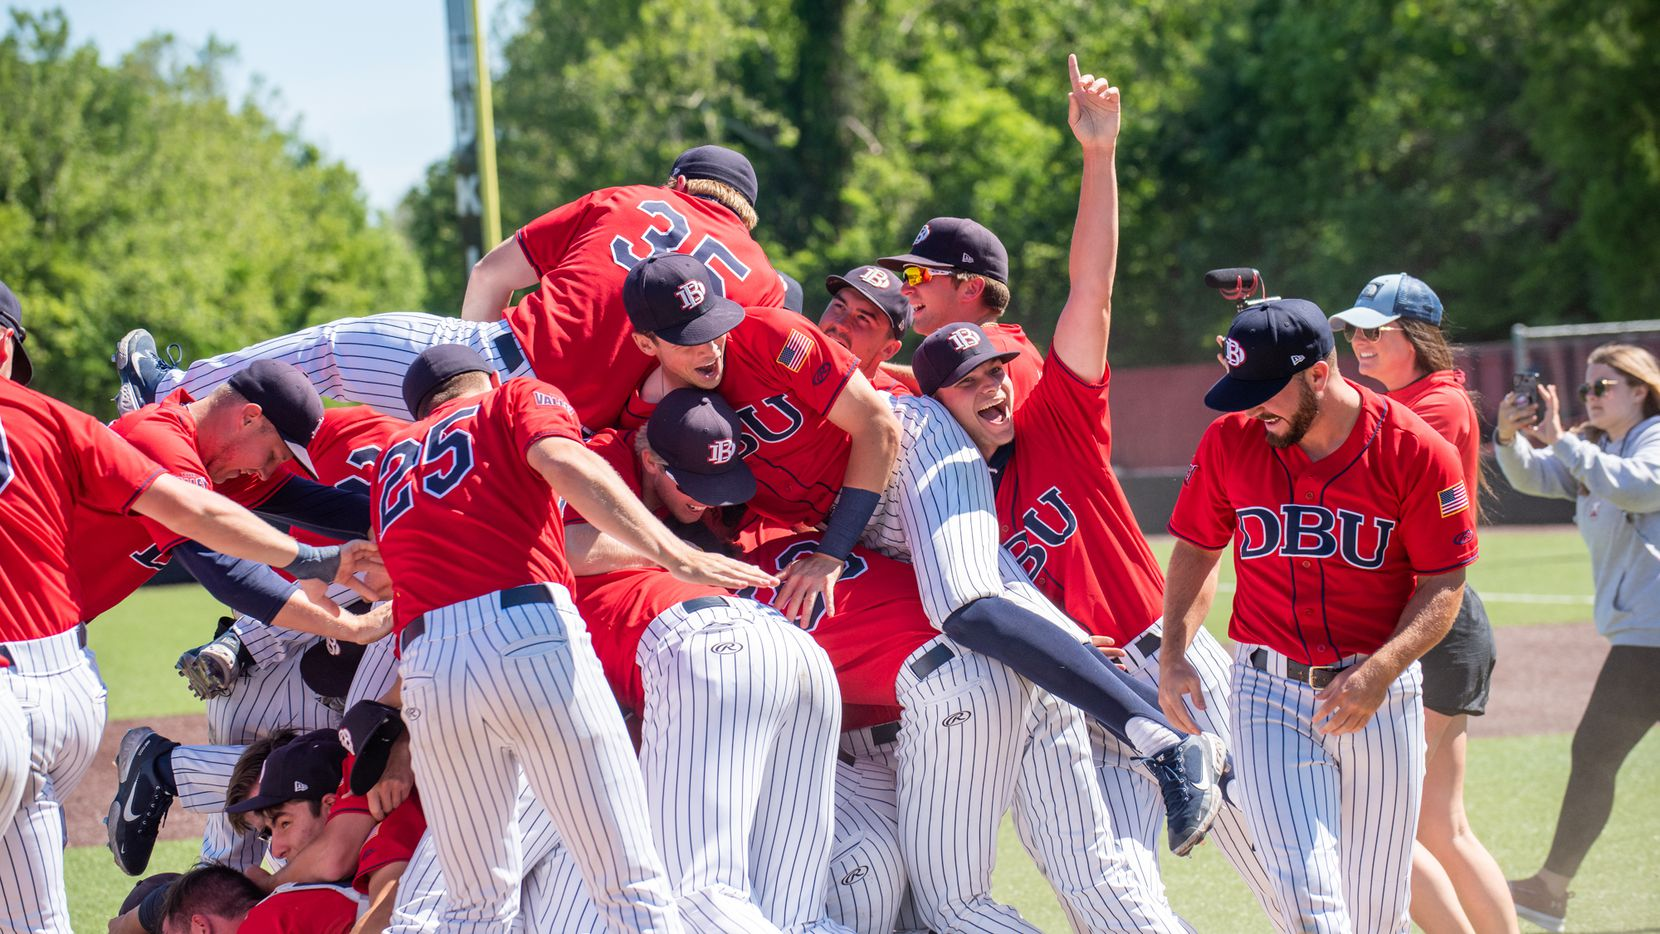 Dallas Baptist baseball celebrates its Missouri Valley Conference title on Sunday after defeating Indiana State, 12-8, in 11 innings.